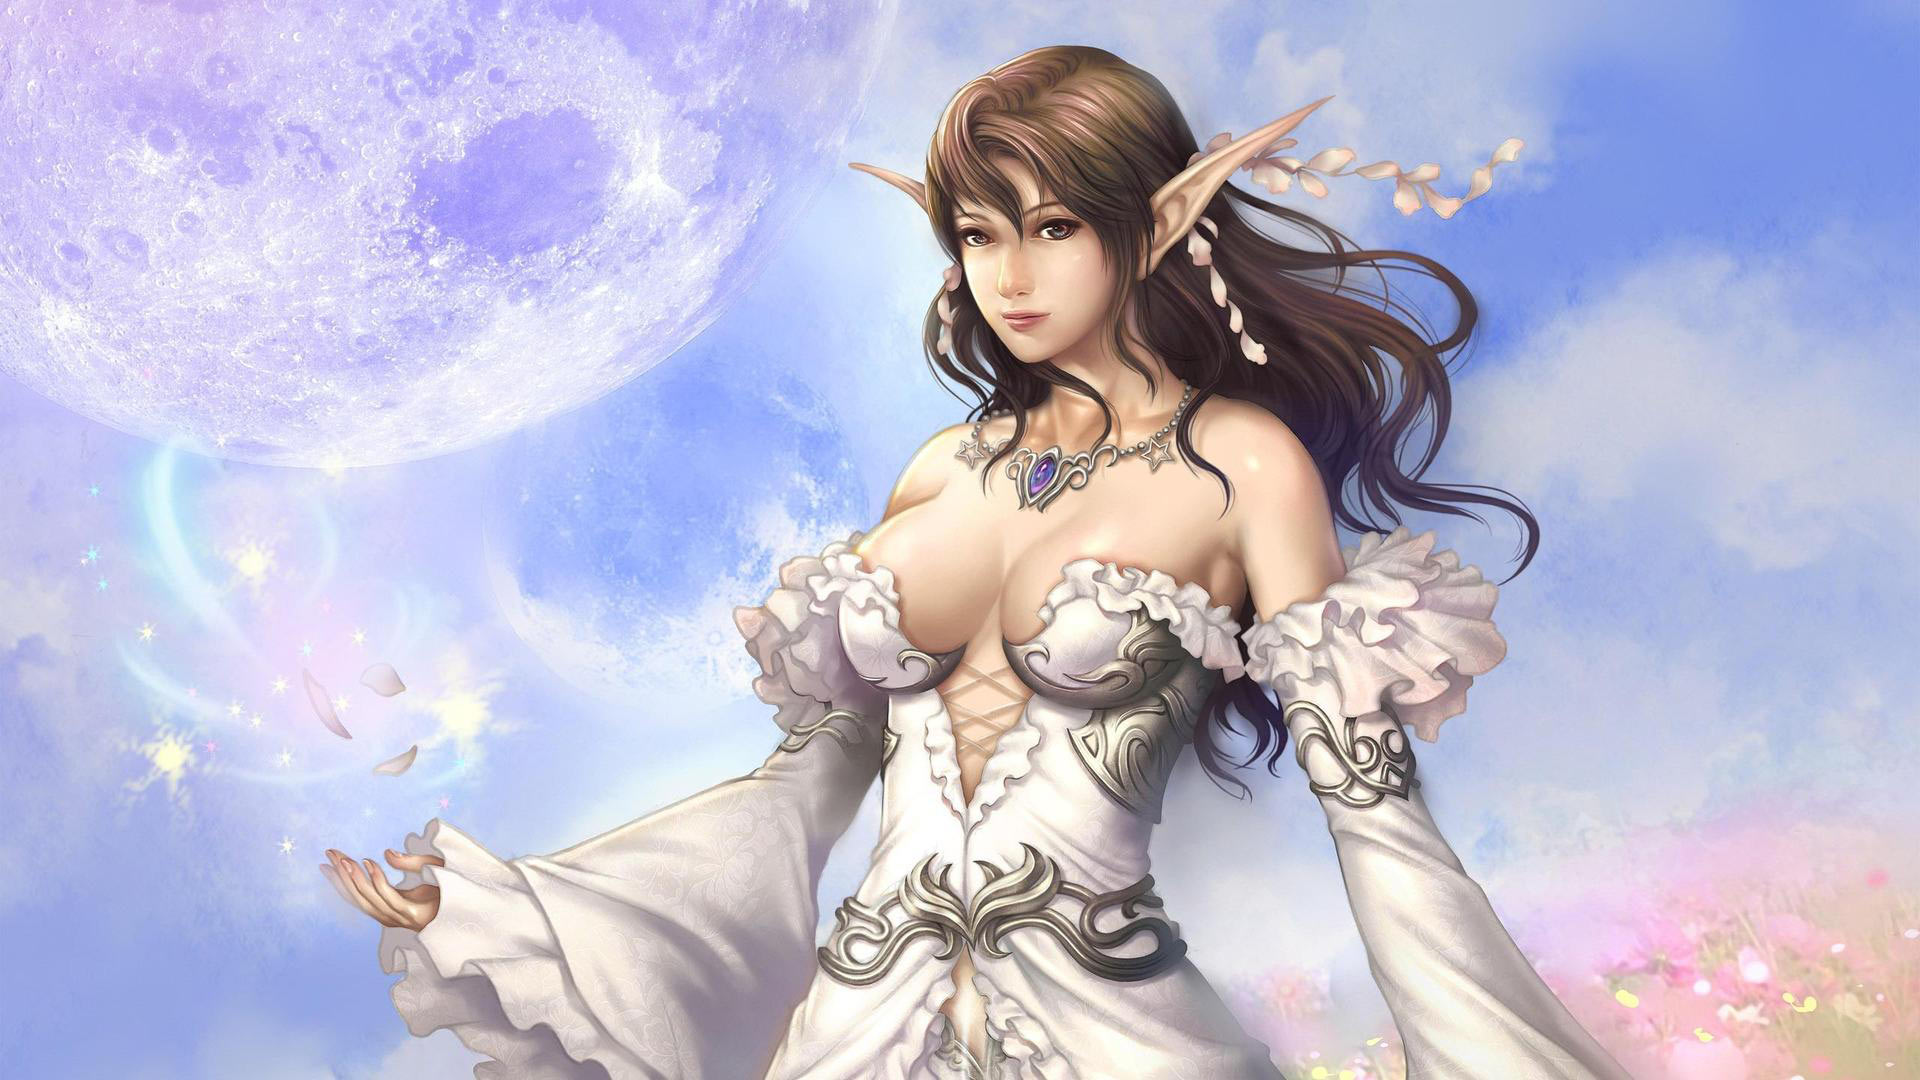 Fantasy girl lmb 35 file size 170 kb fantasy girl wallpaper voltagebd Images